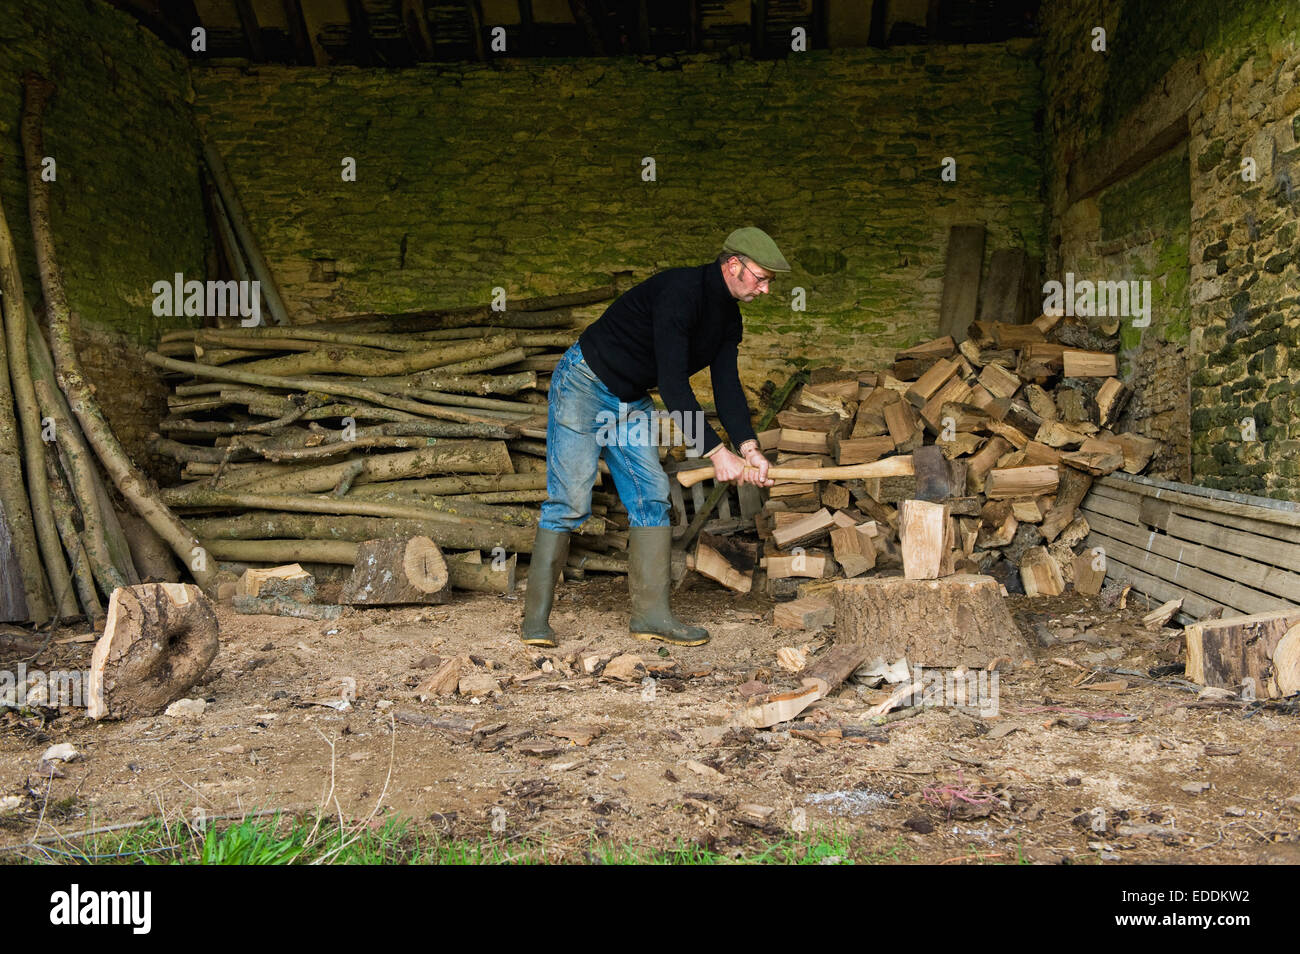 A man chopping wood with an axe, a pile of logs and chopped wood. - Stock Image